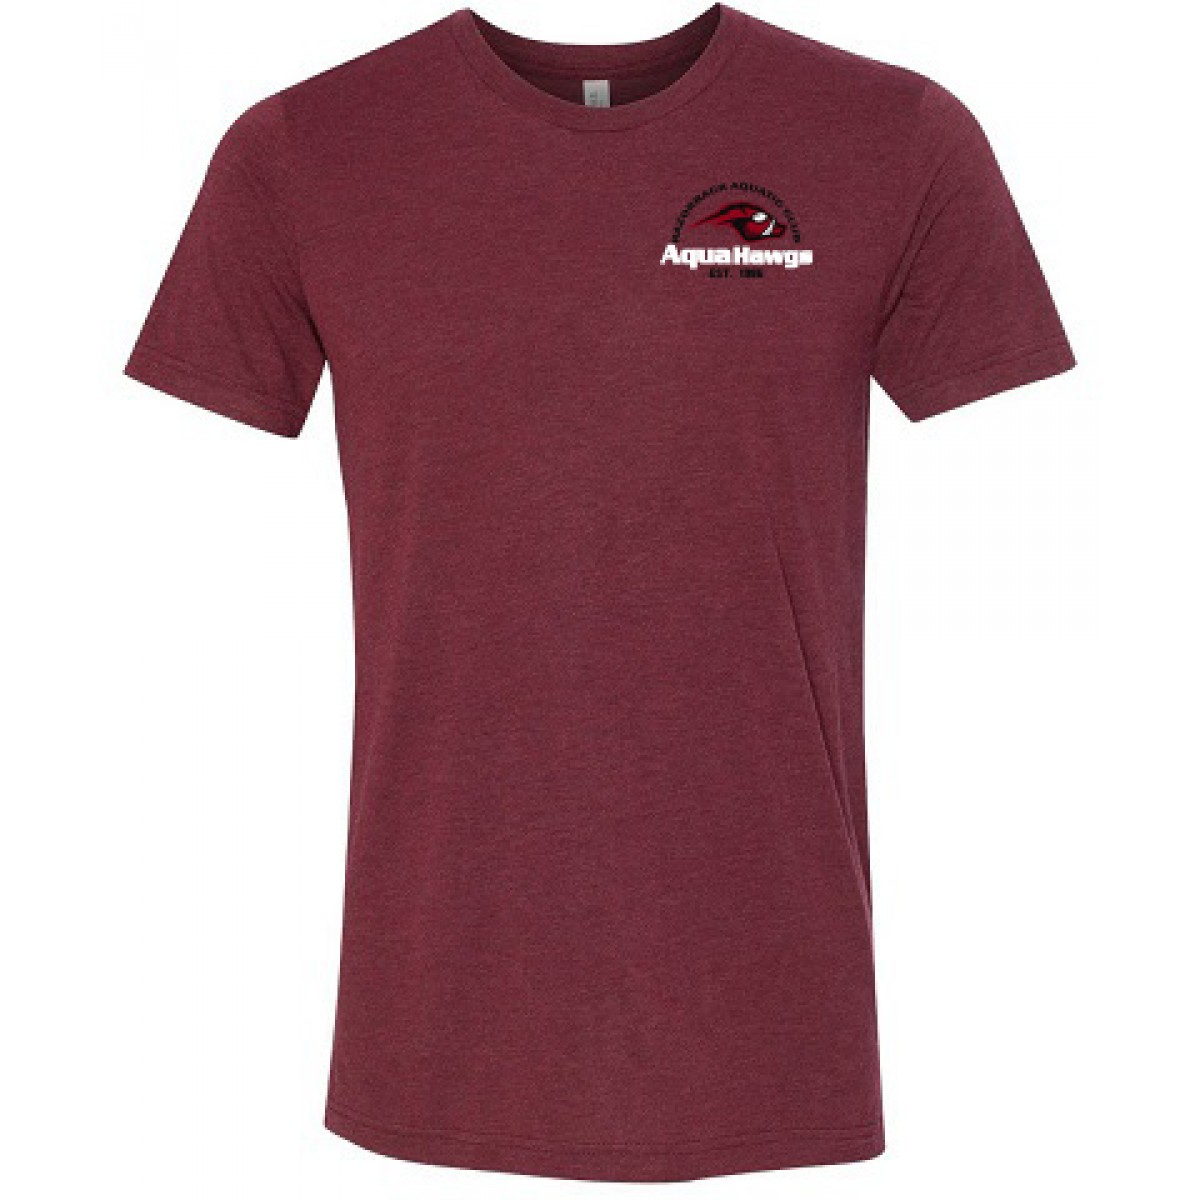 Bella+Canvas Unisex Short Sleeve Jersey T-Shirt-Cardinal Red-YM